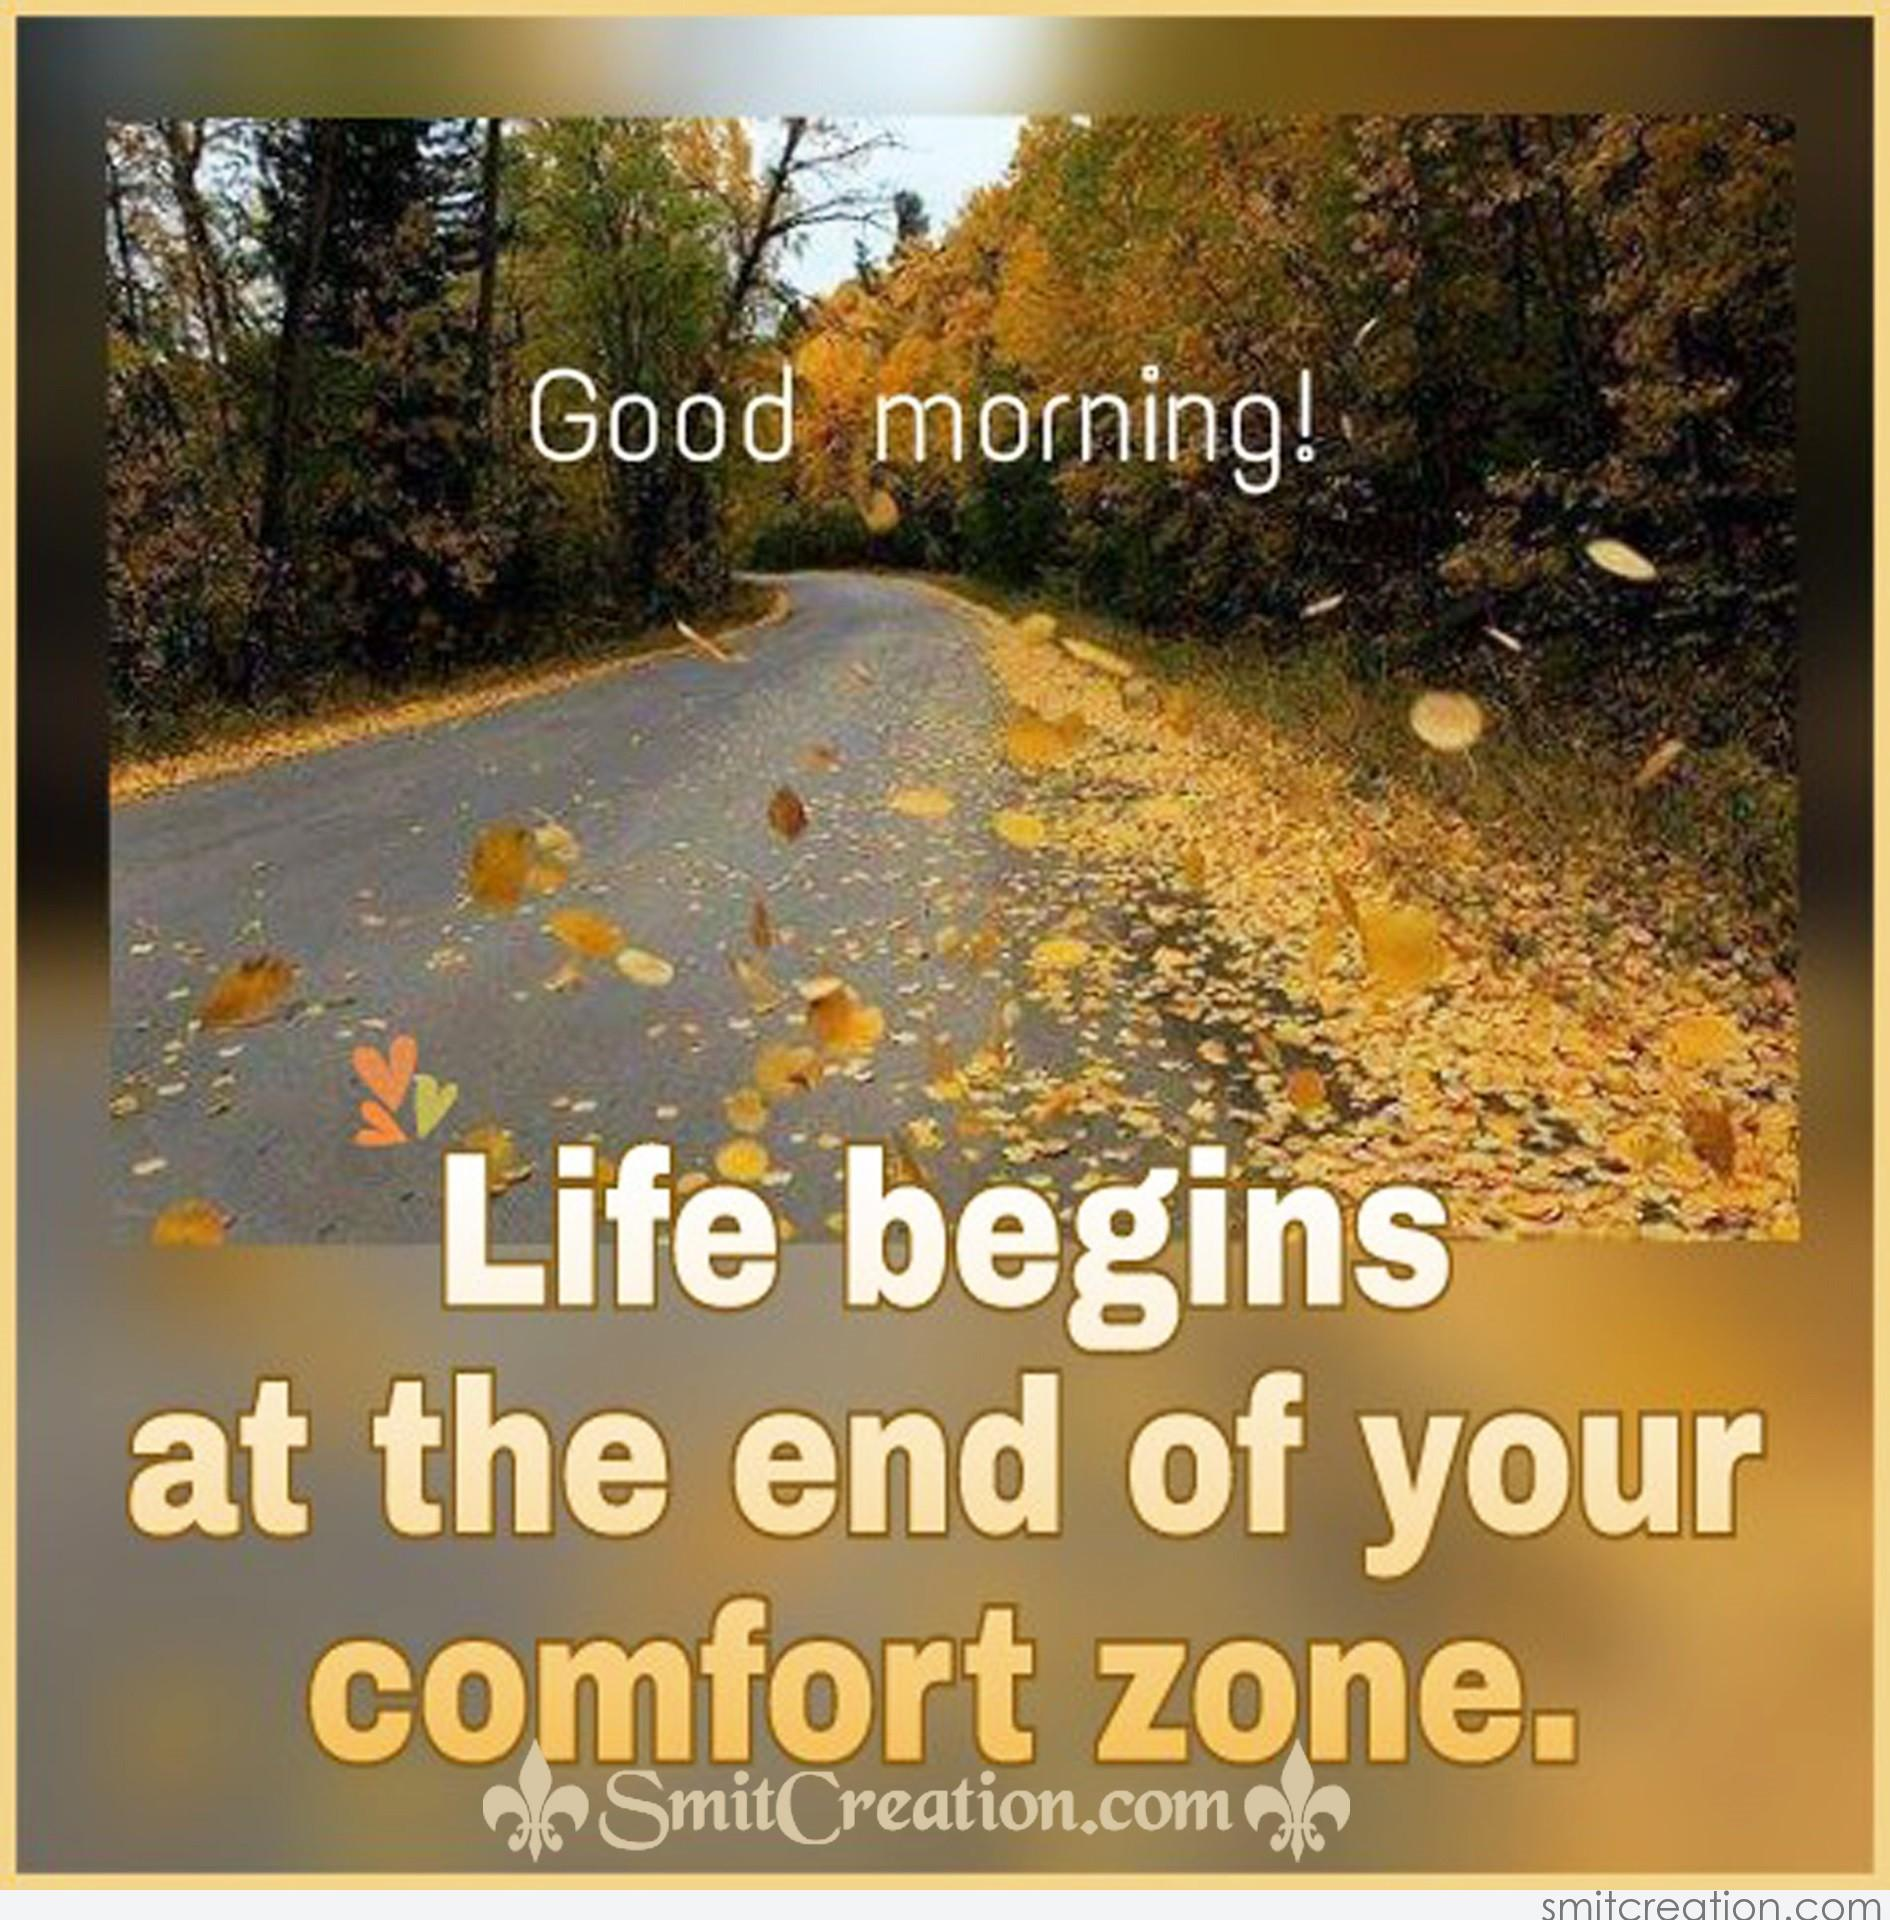 Good Morning Life Begins At The End Of Your Comfort Zone